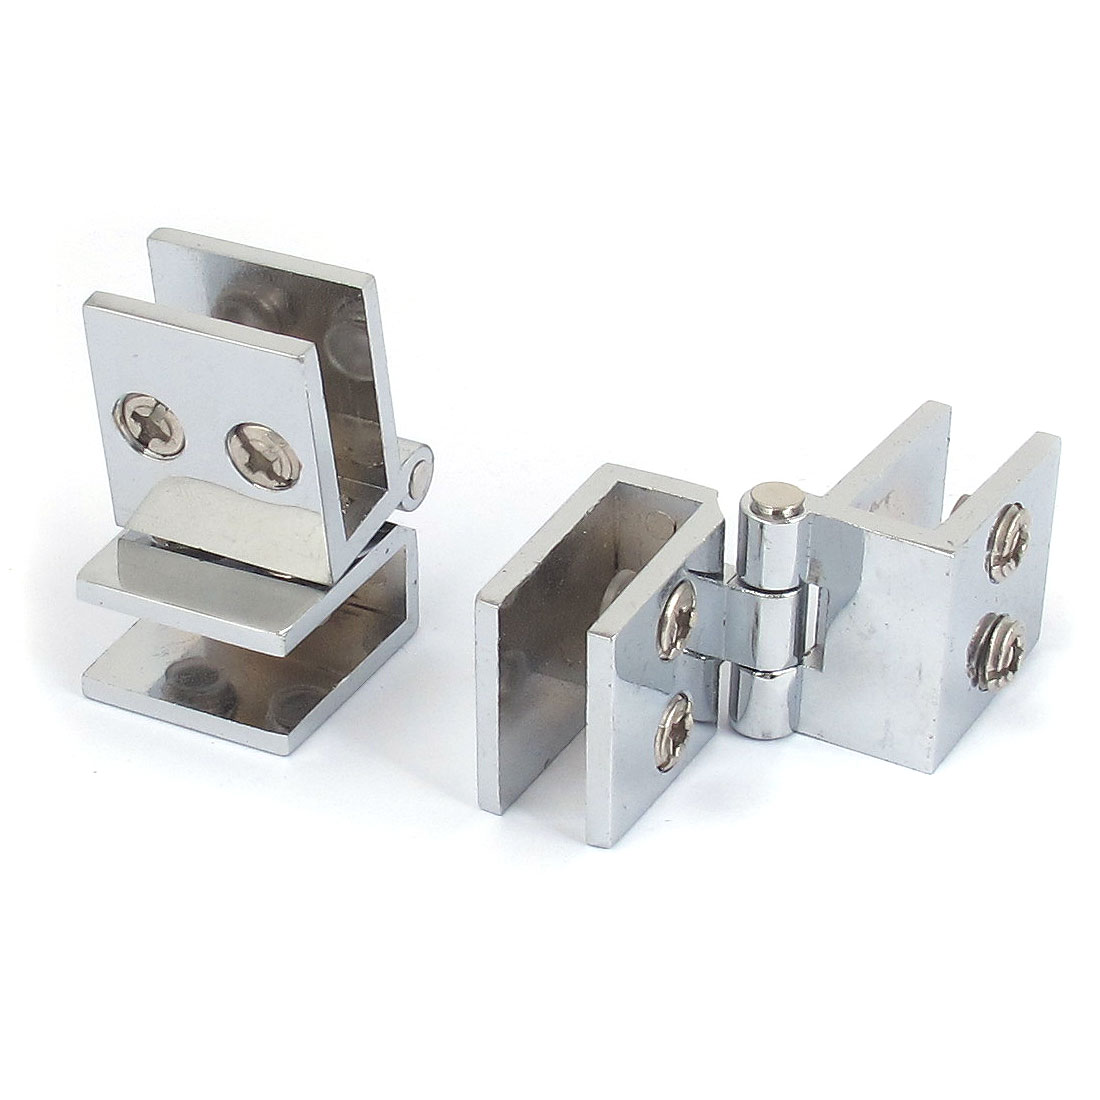 Silver Tone Alloy 8mm Thickness Glass Shelf Clip Clamp Support Bracket Holder